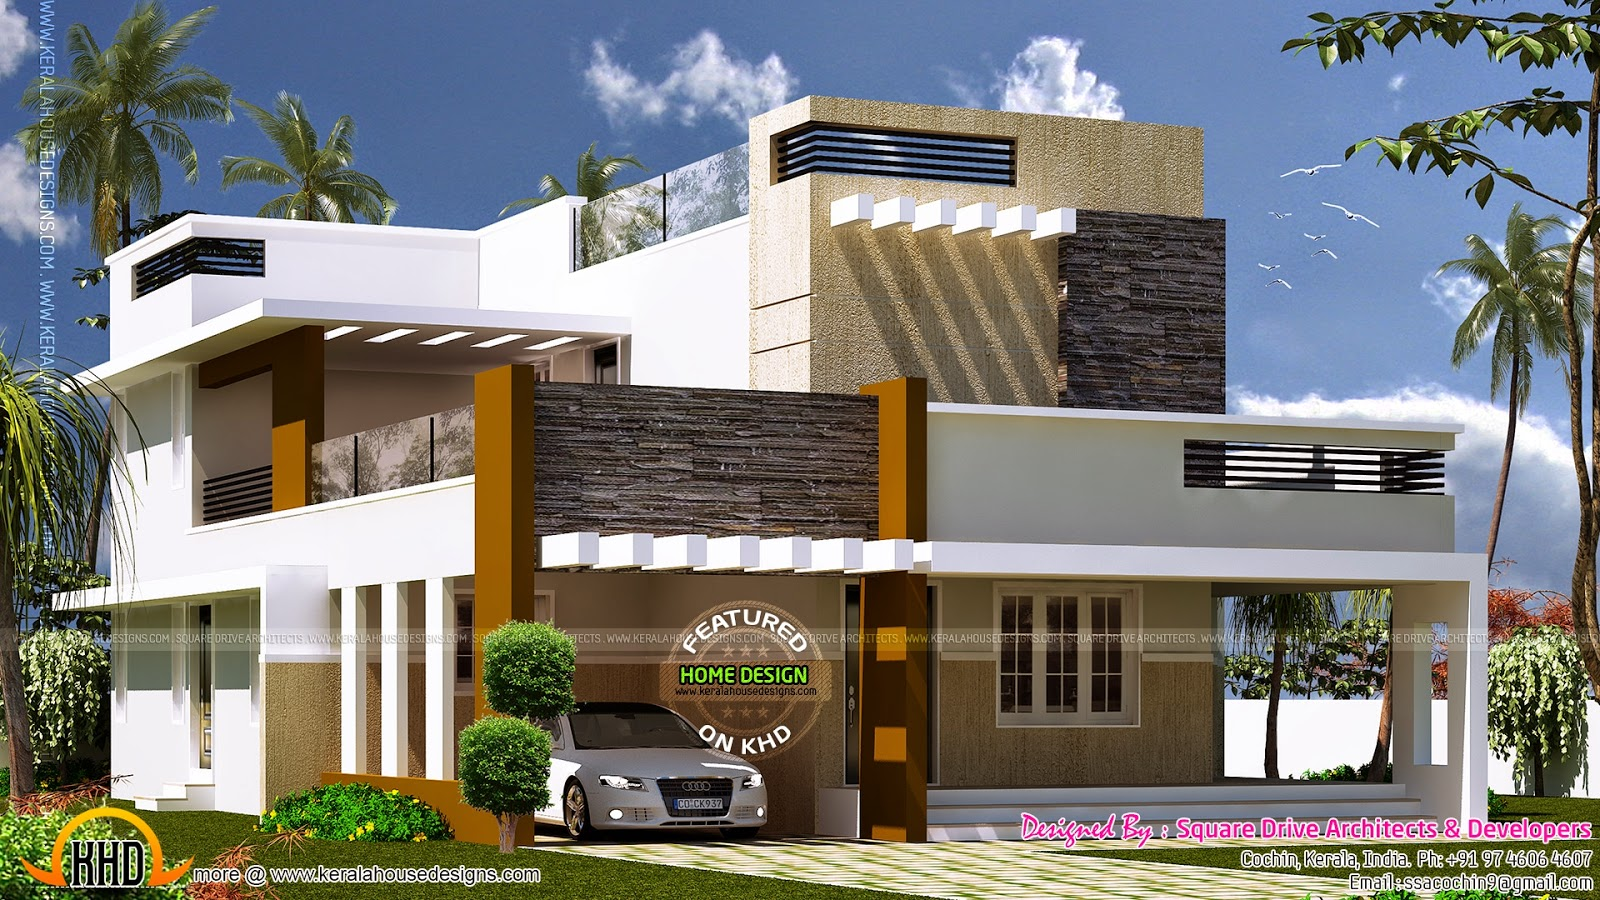 Duplex house plan india keralahousedesigns for Independent house designs in india